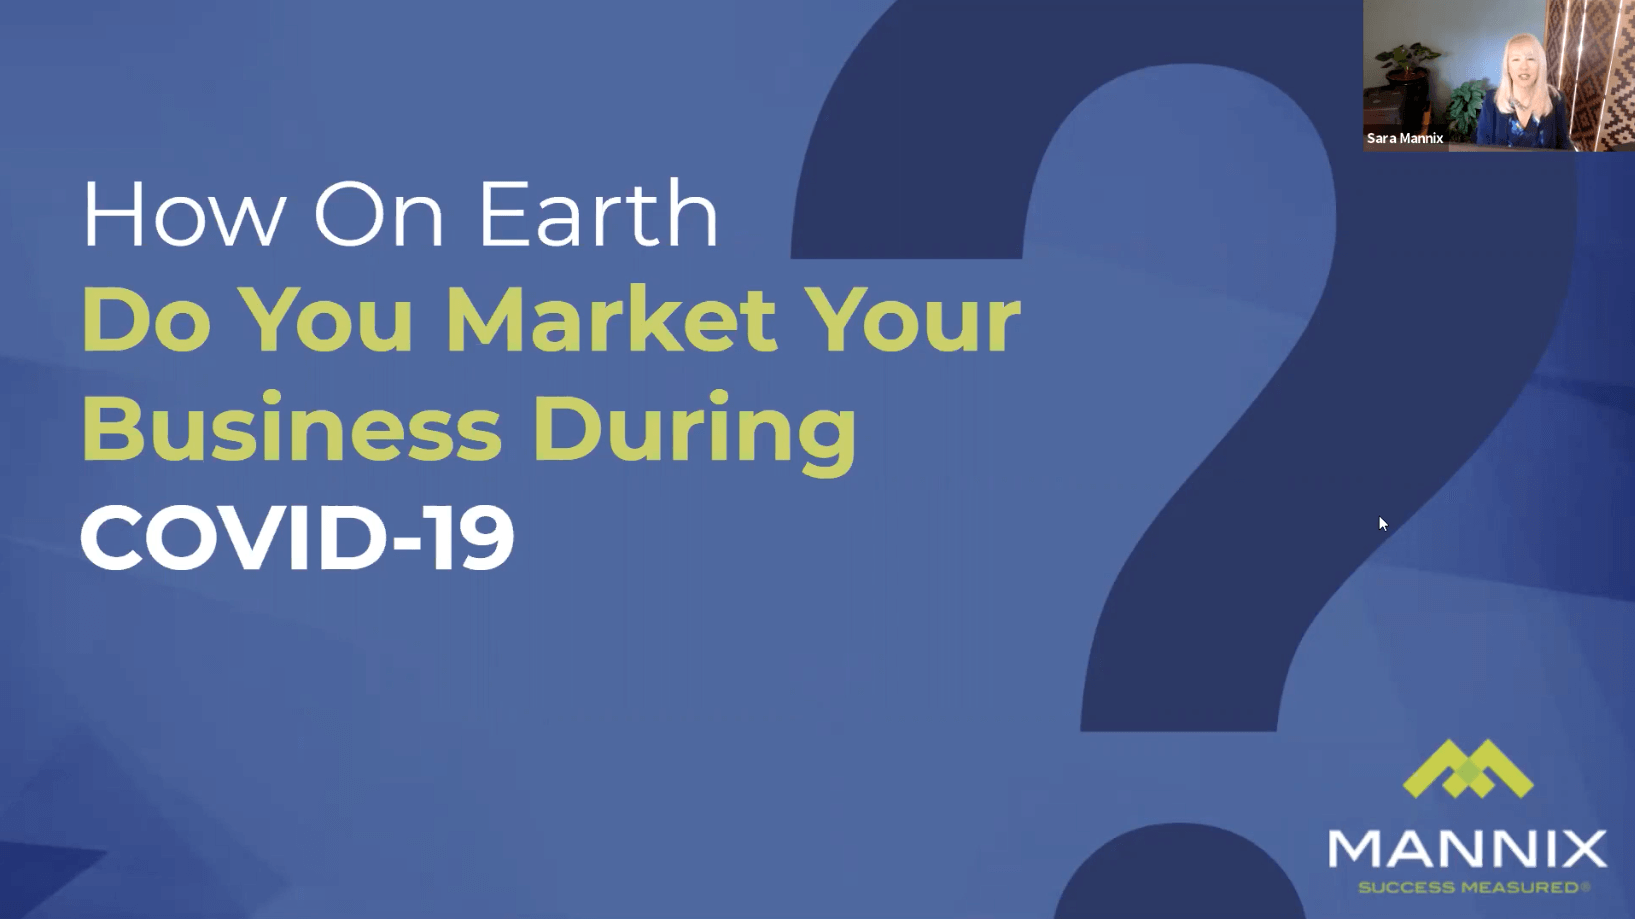 How On Earth Do You Market Your Business During Covid-19?